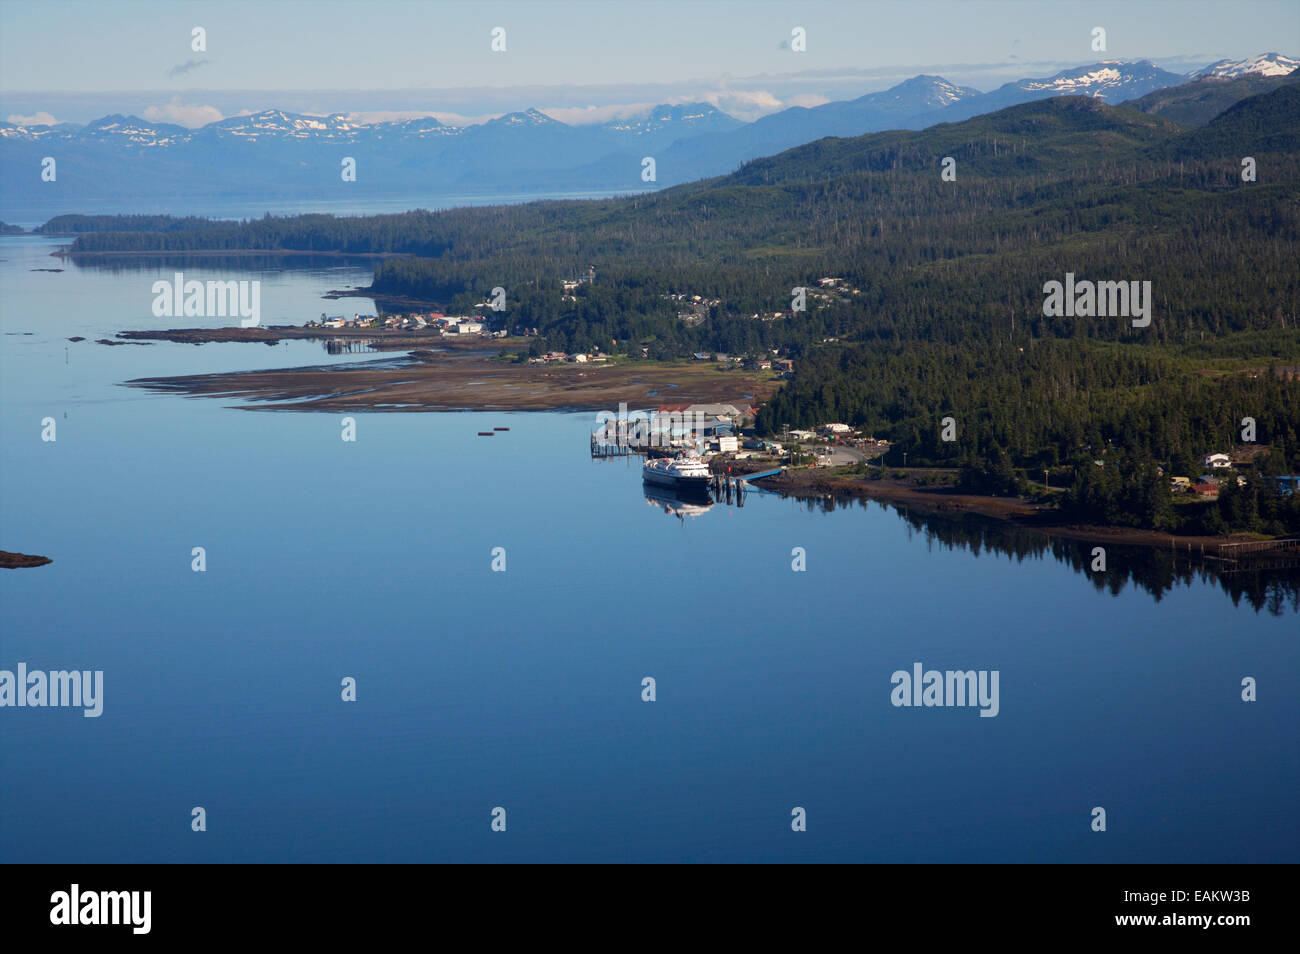 Aerial View Of The Village Of Kake In Southeast, Alaska - Stock Image